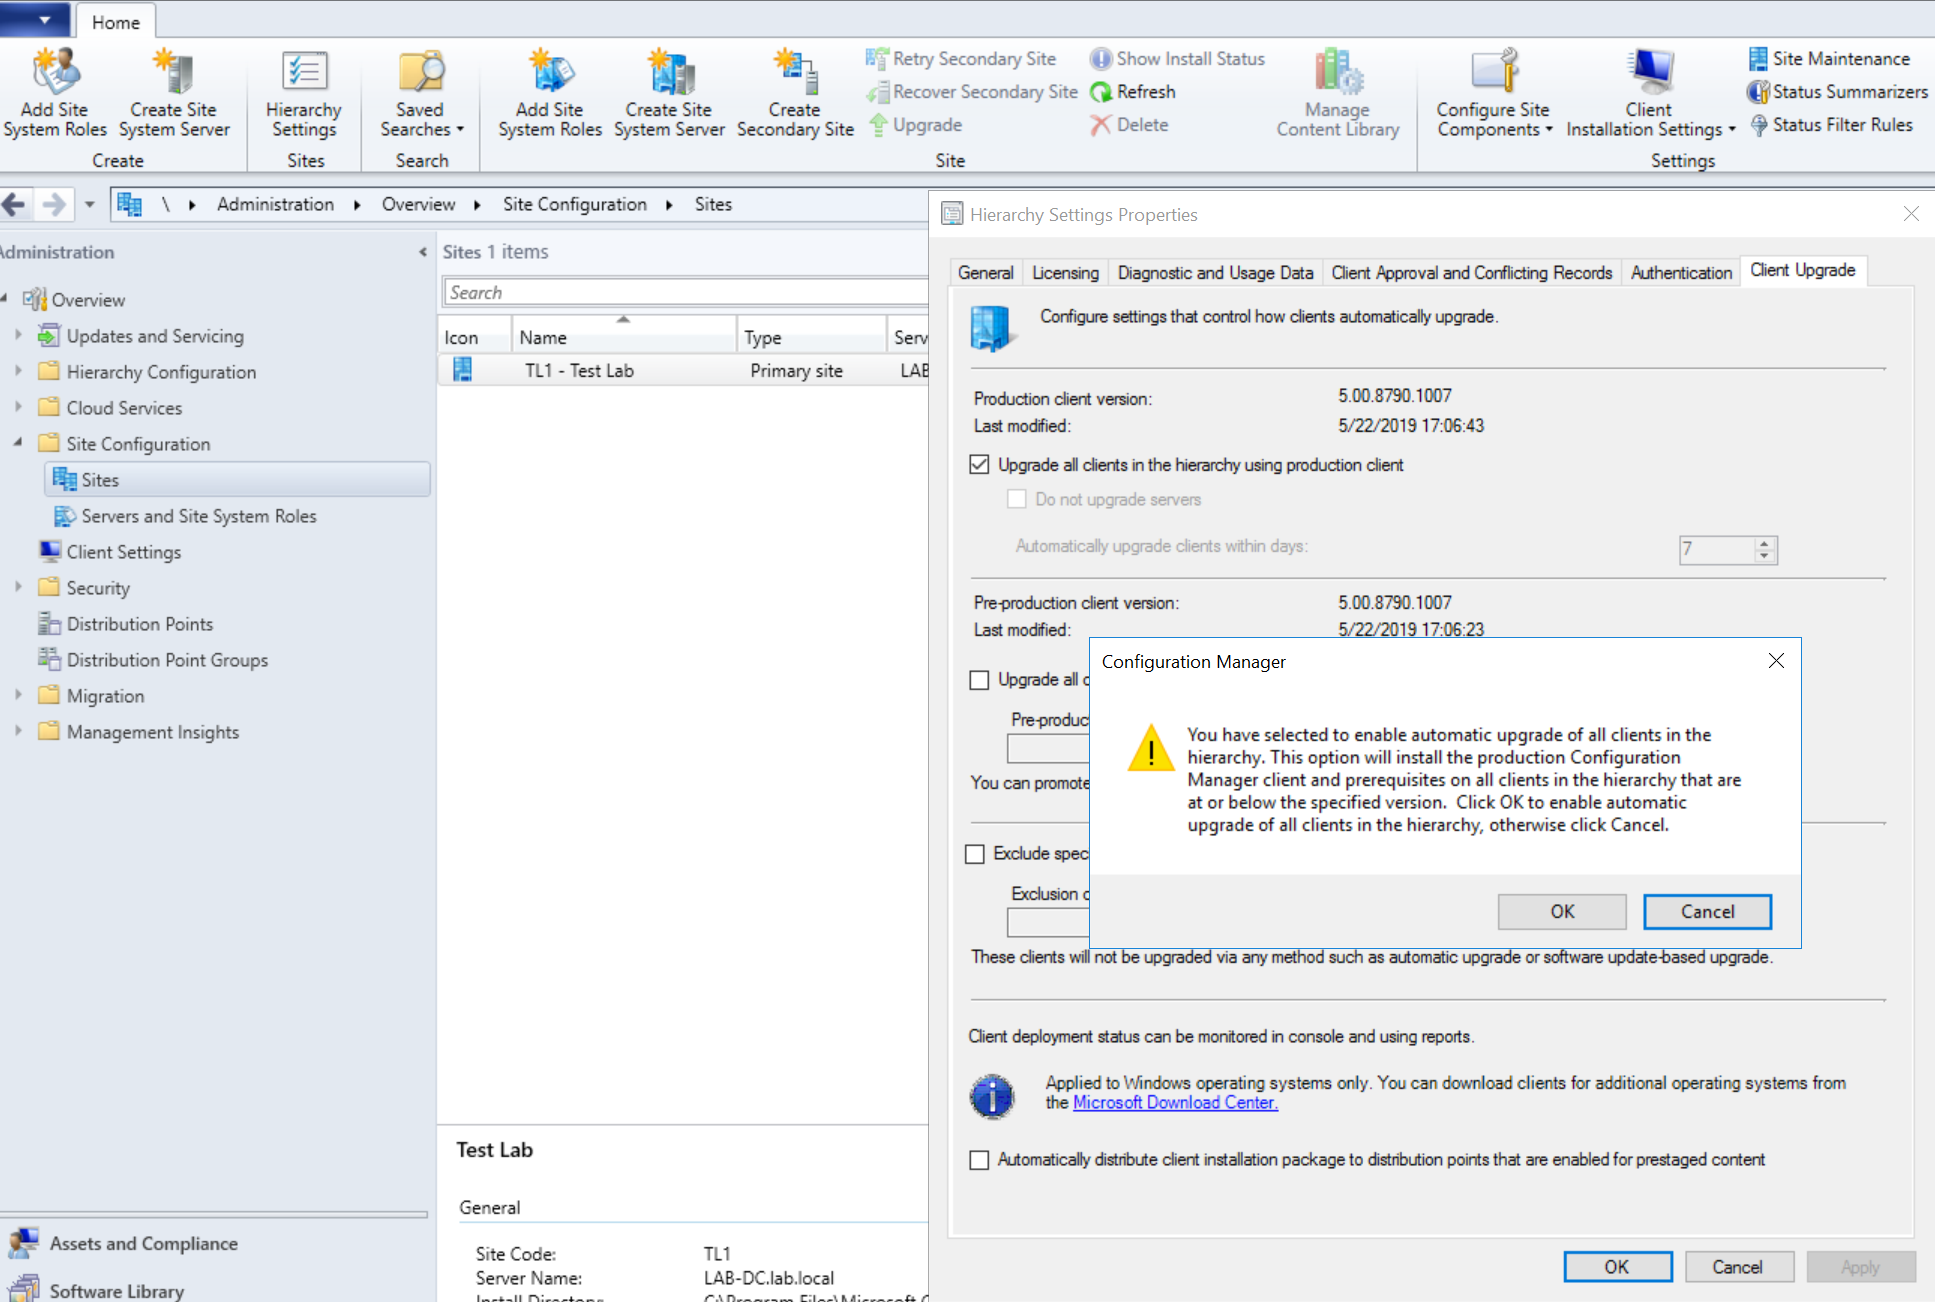 Migration Upgrade from SCCM 2012 to Current Branch (1902)